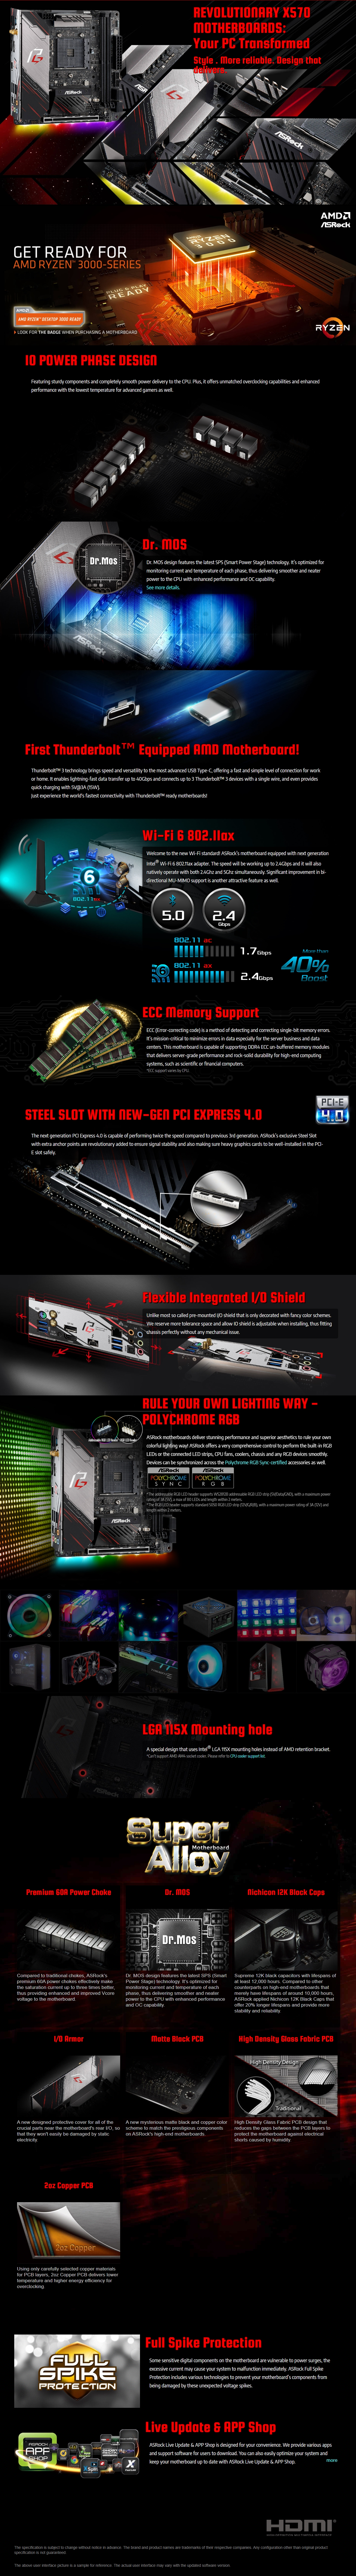 A large marketing image providing additional information about the product ASRock X570 Phantom Gaming-ITX/TB3 AM4 mITX Desktop Motherboard - Additional alt info not provided